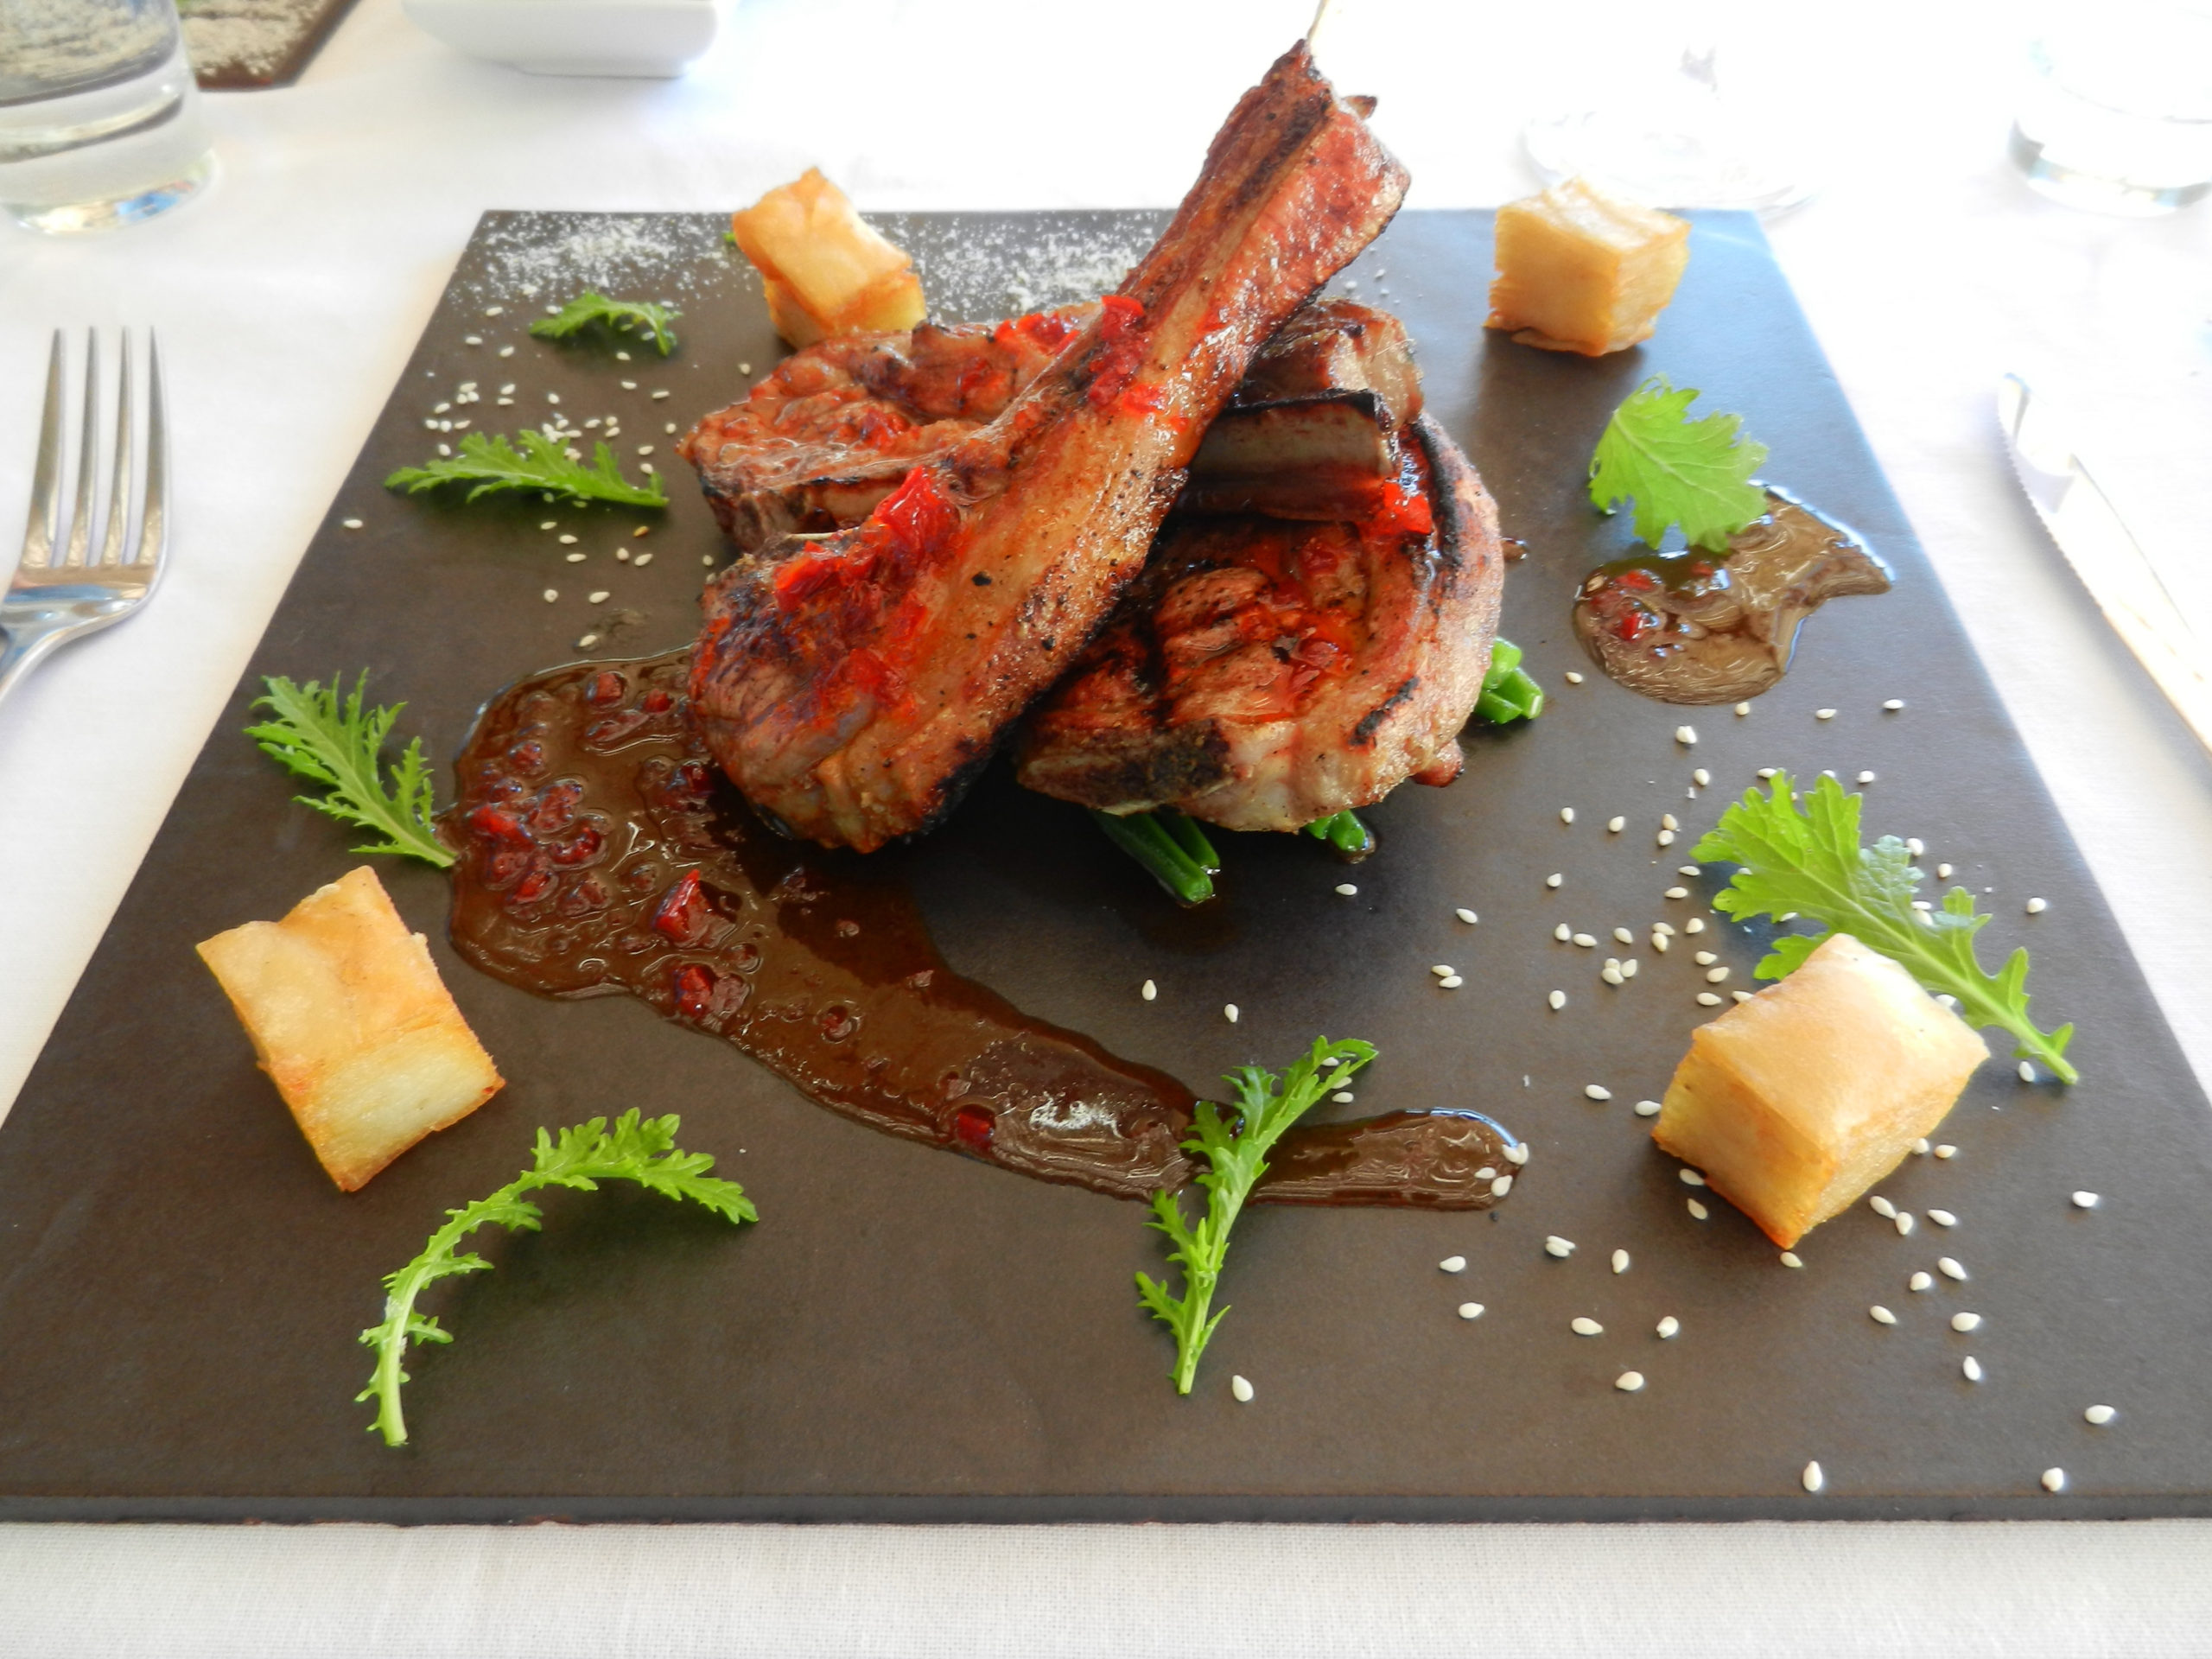 Tantalizing cuisine of South Africa. Image Cindy Dykman